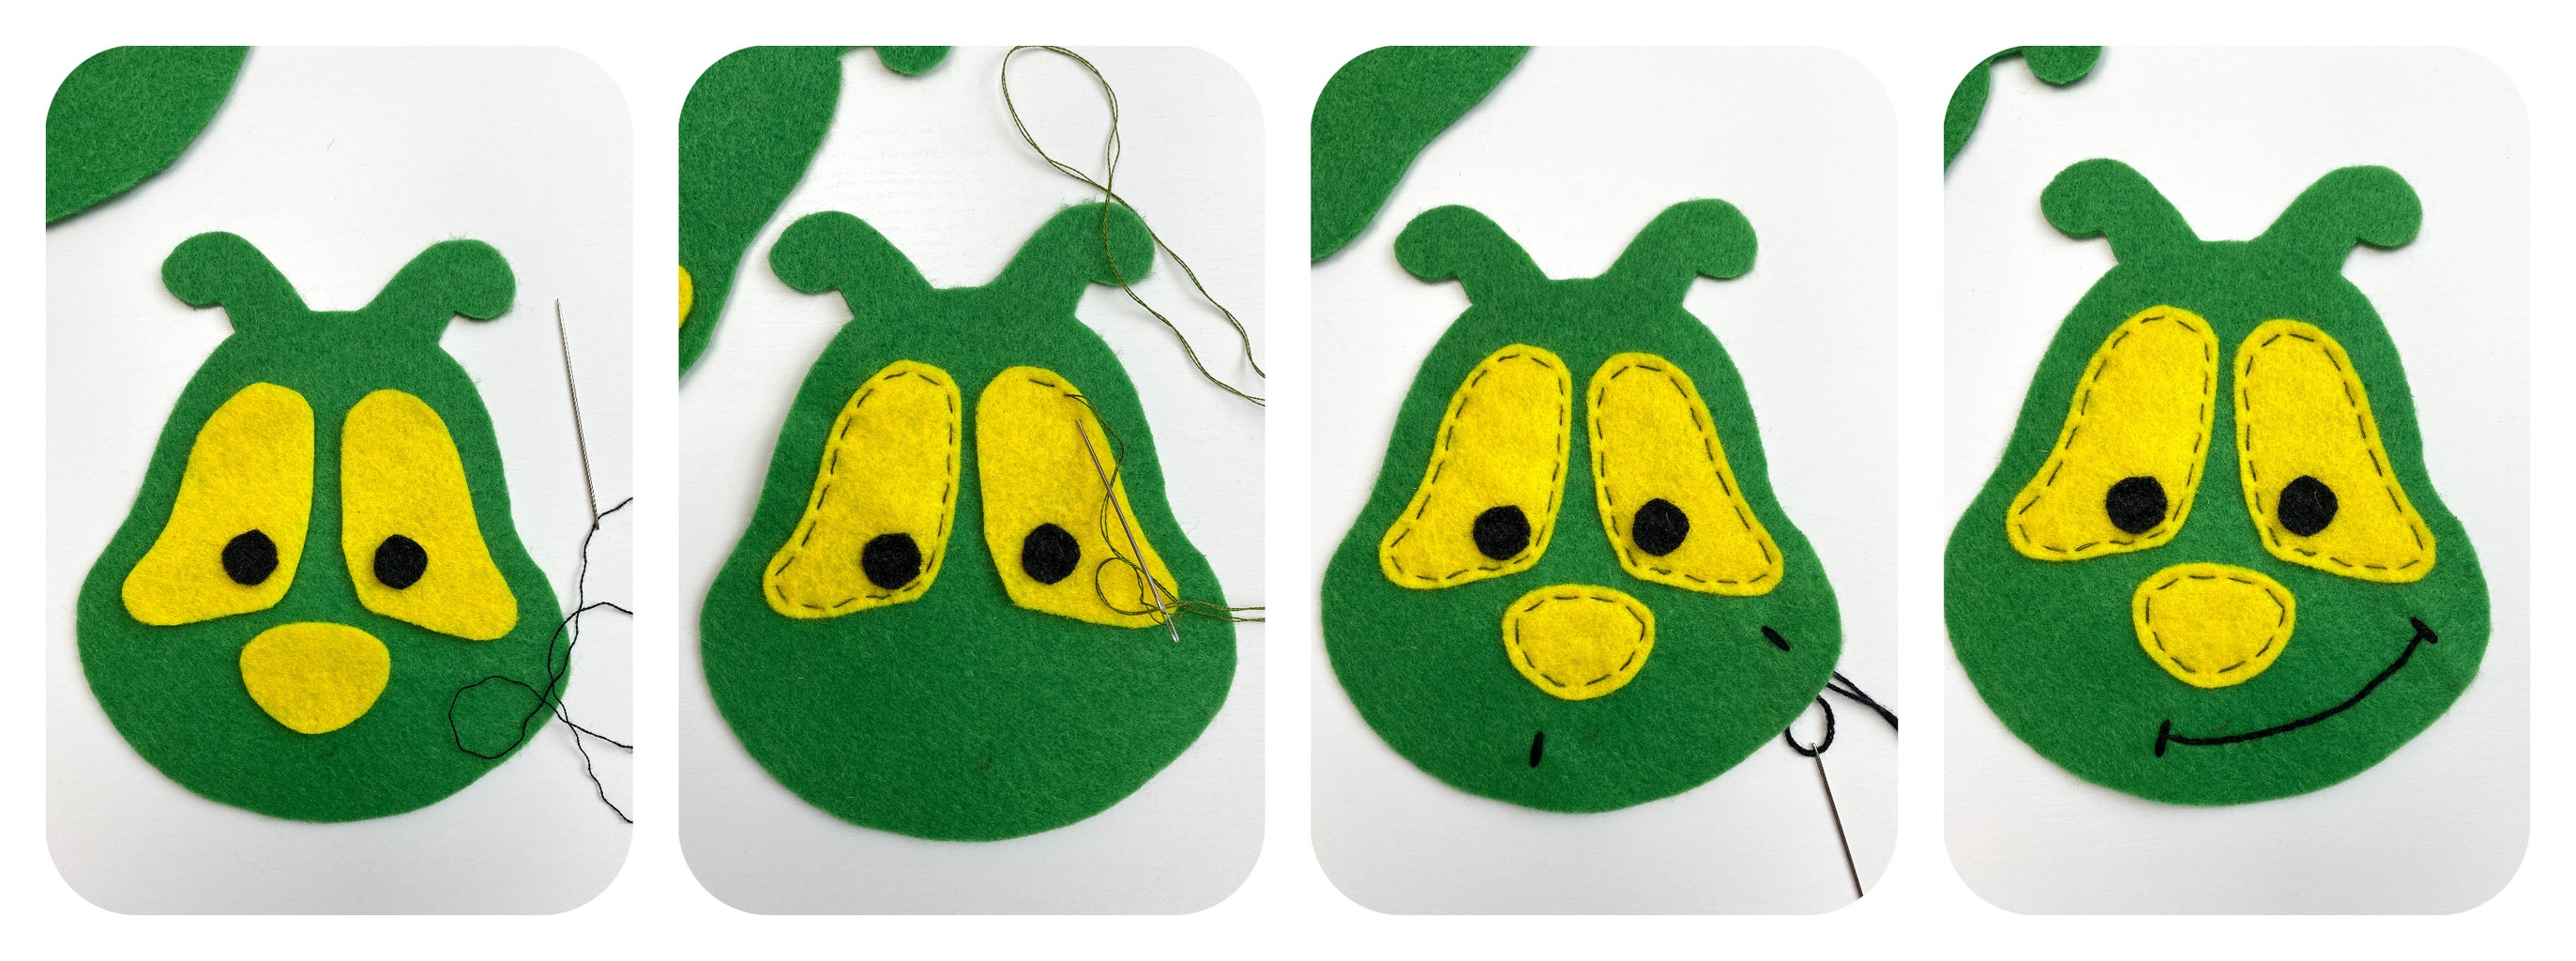 To Embroider a Face, Use Embroidery Threads or Crochet Yarn